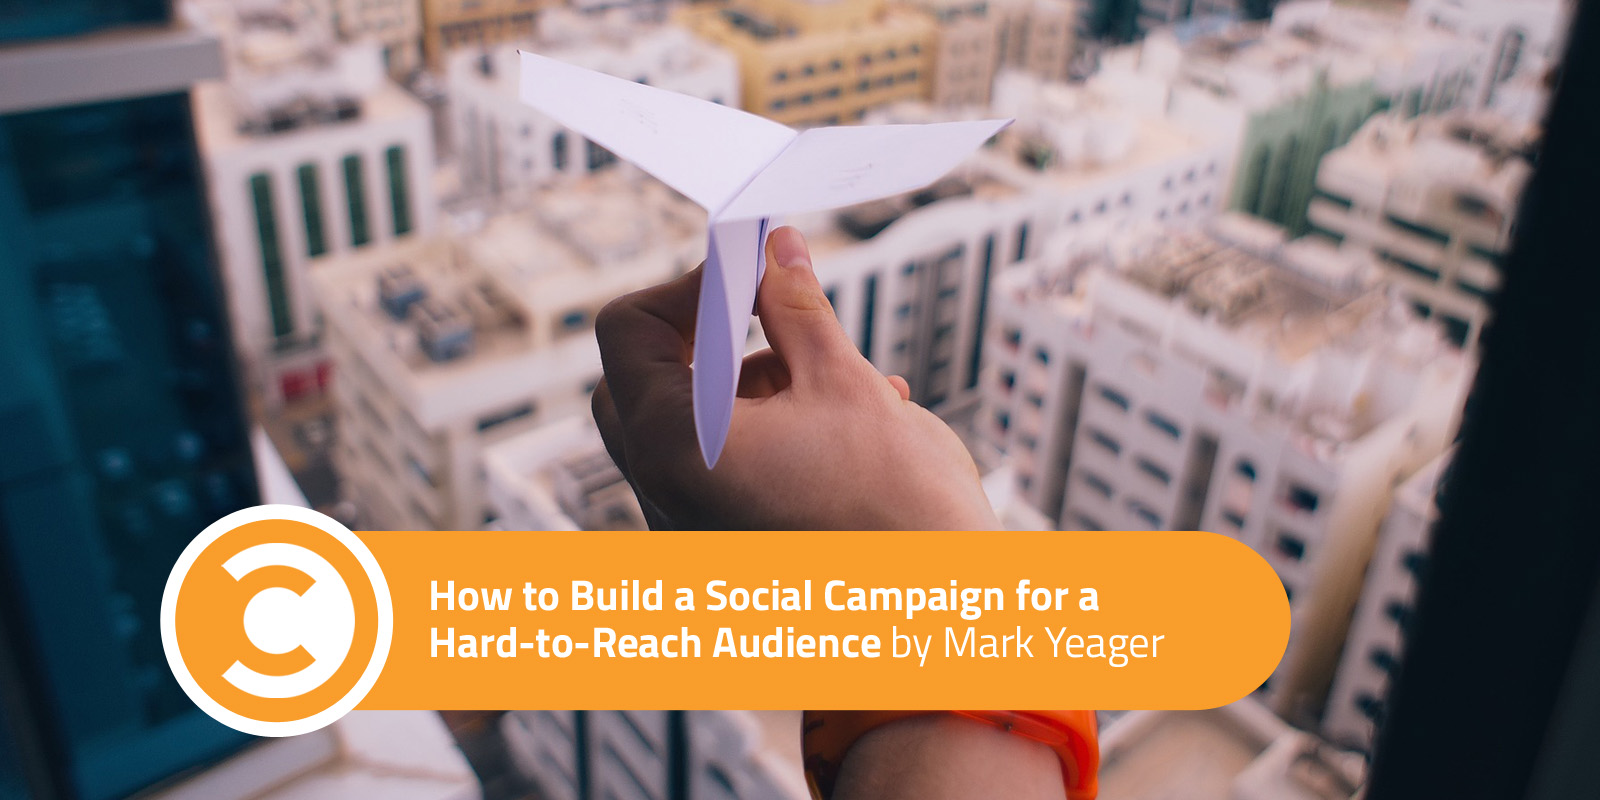 How to Build a Social Campaign for a Hard-to-Reach Audience